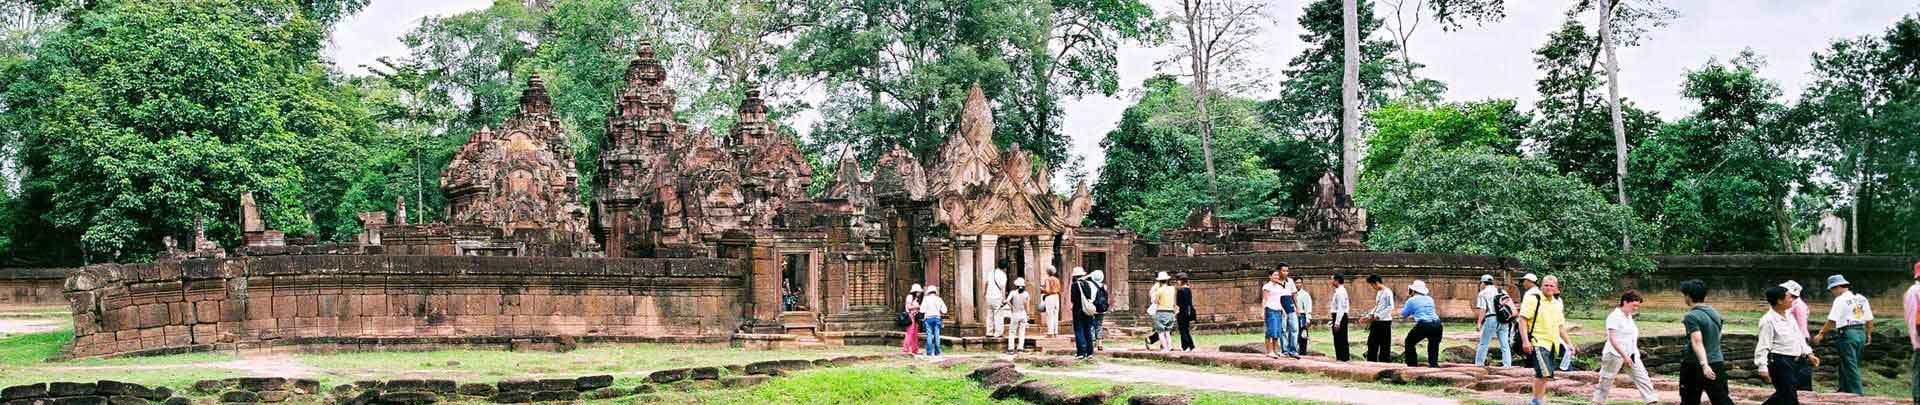 Discover Magical Temple City of Angkor Wat <p><i>4 Days 3 Nights</i><br><i>Price from 170$</i></p><a class=